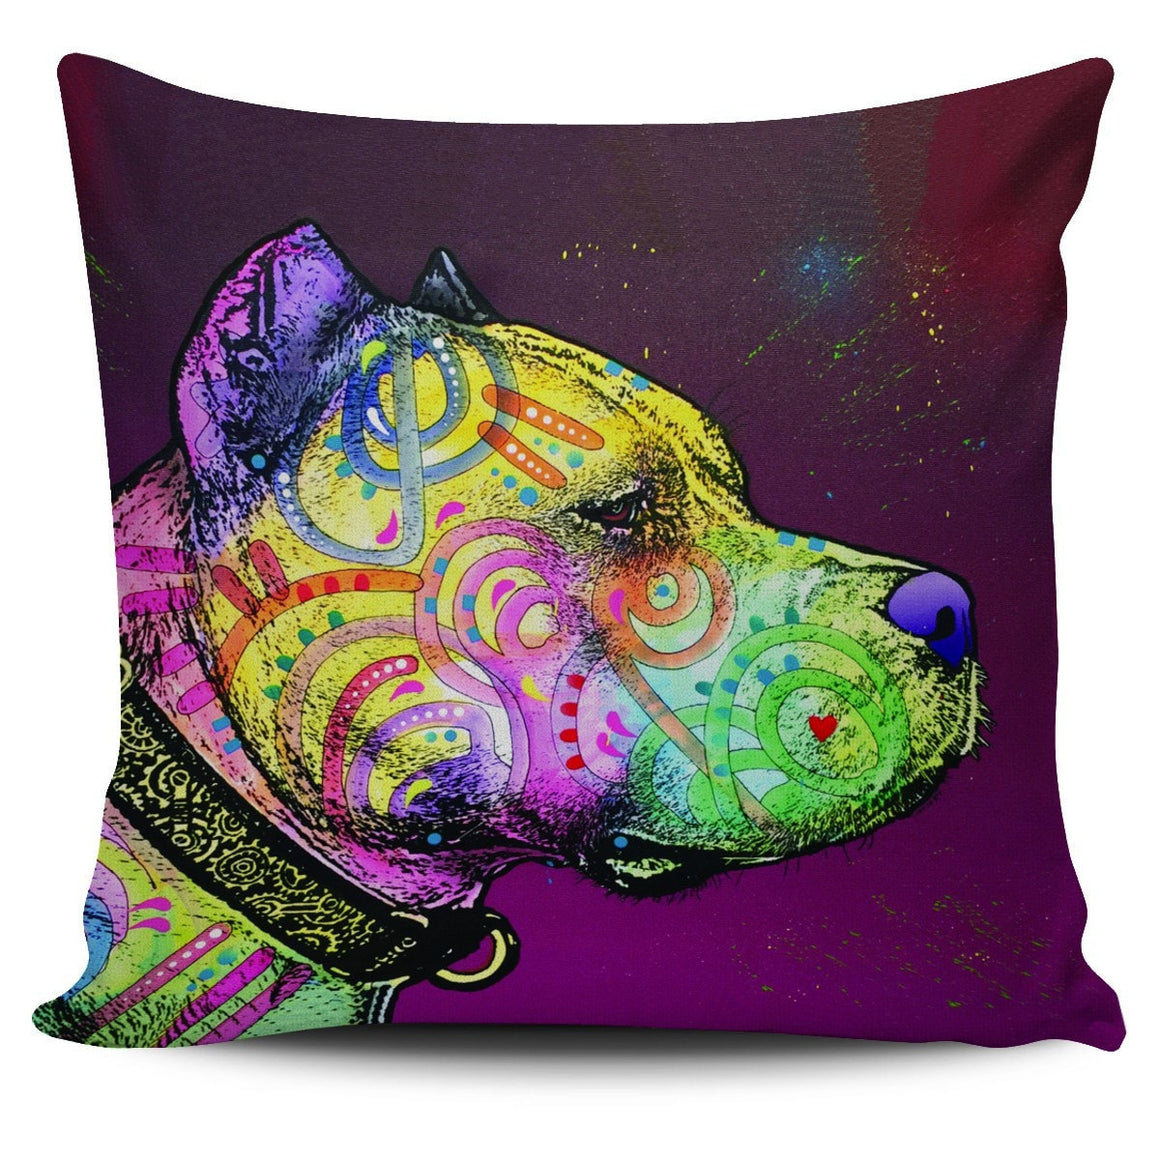 Pit Bull Pillow Covers Series III